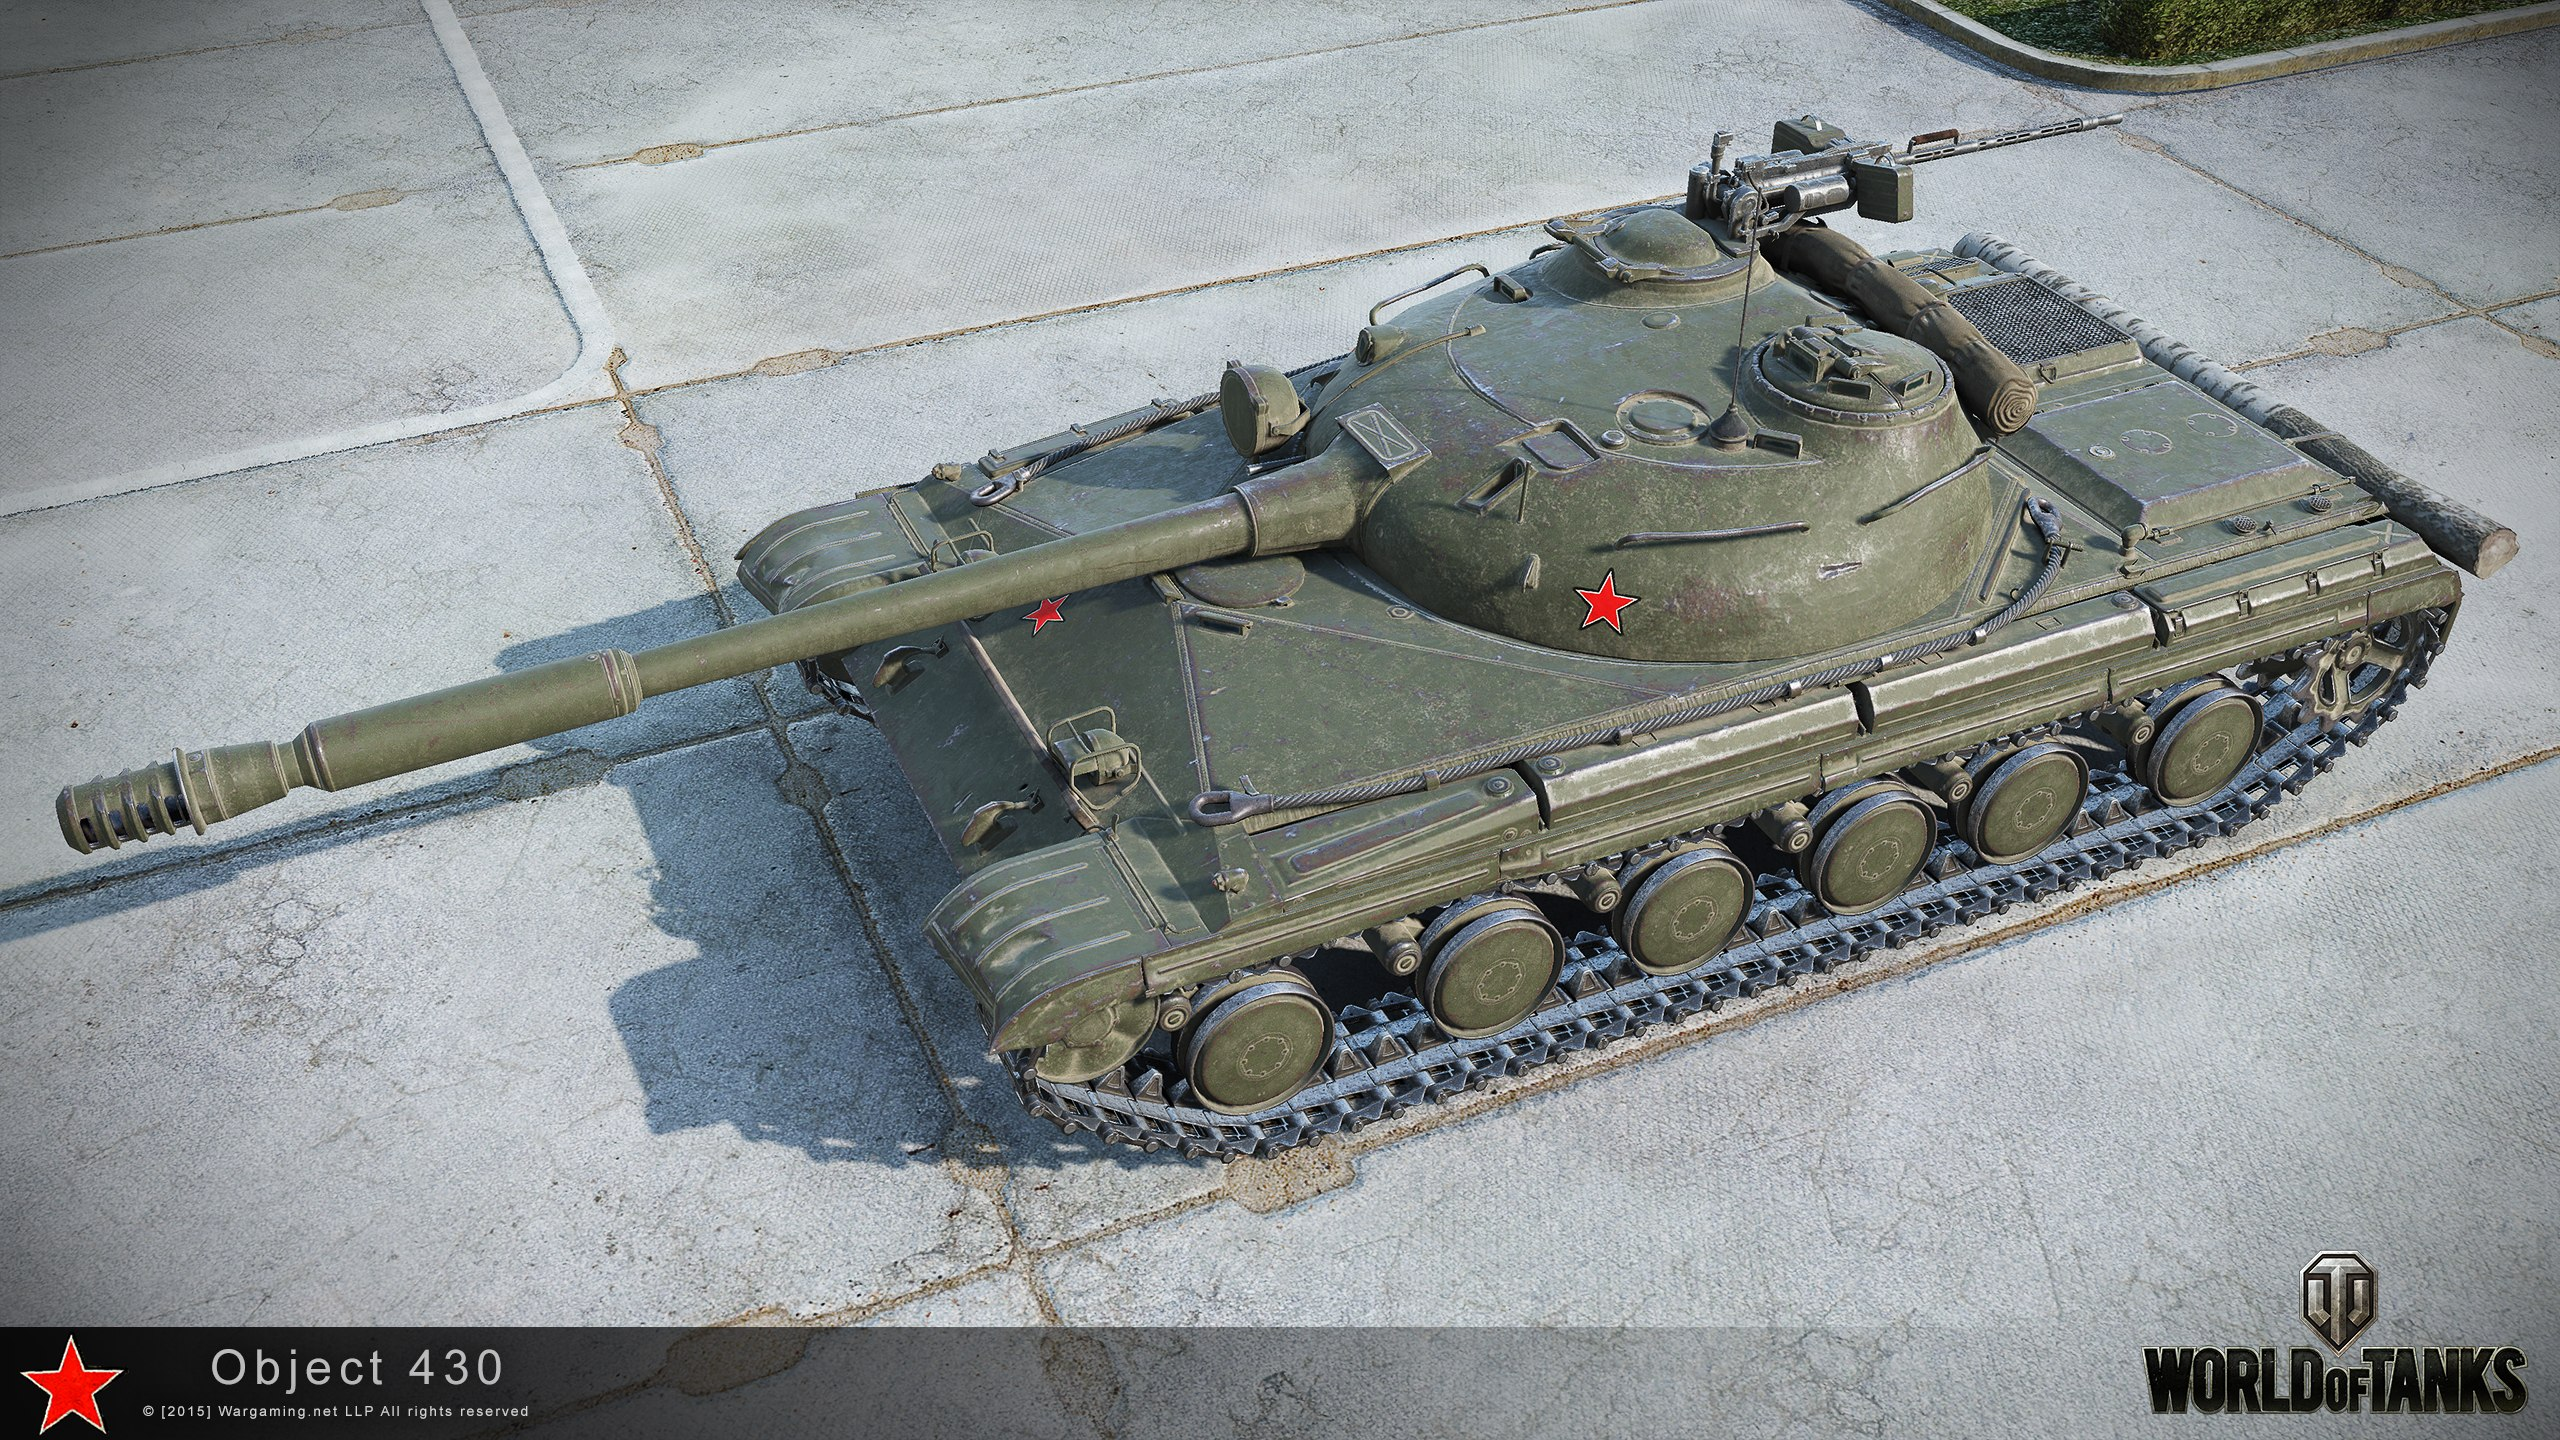 object 430 hd renders – the armored patrol